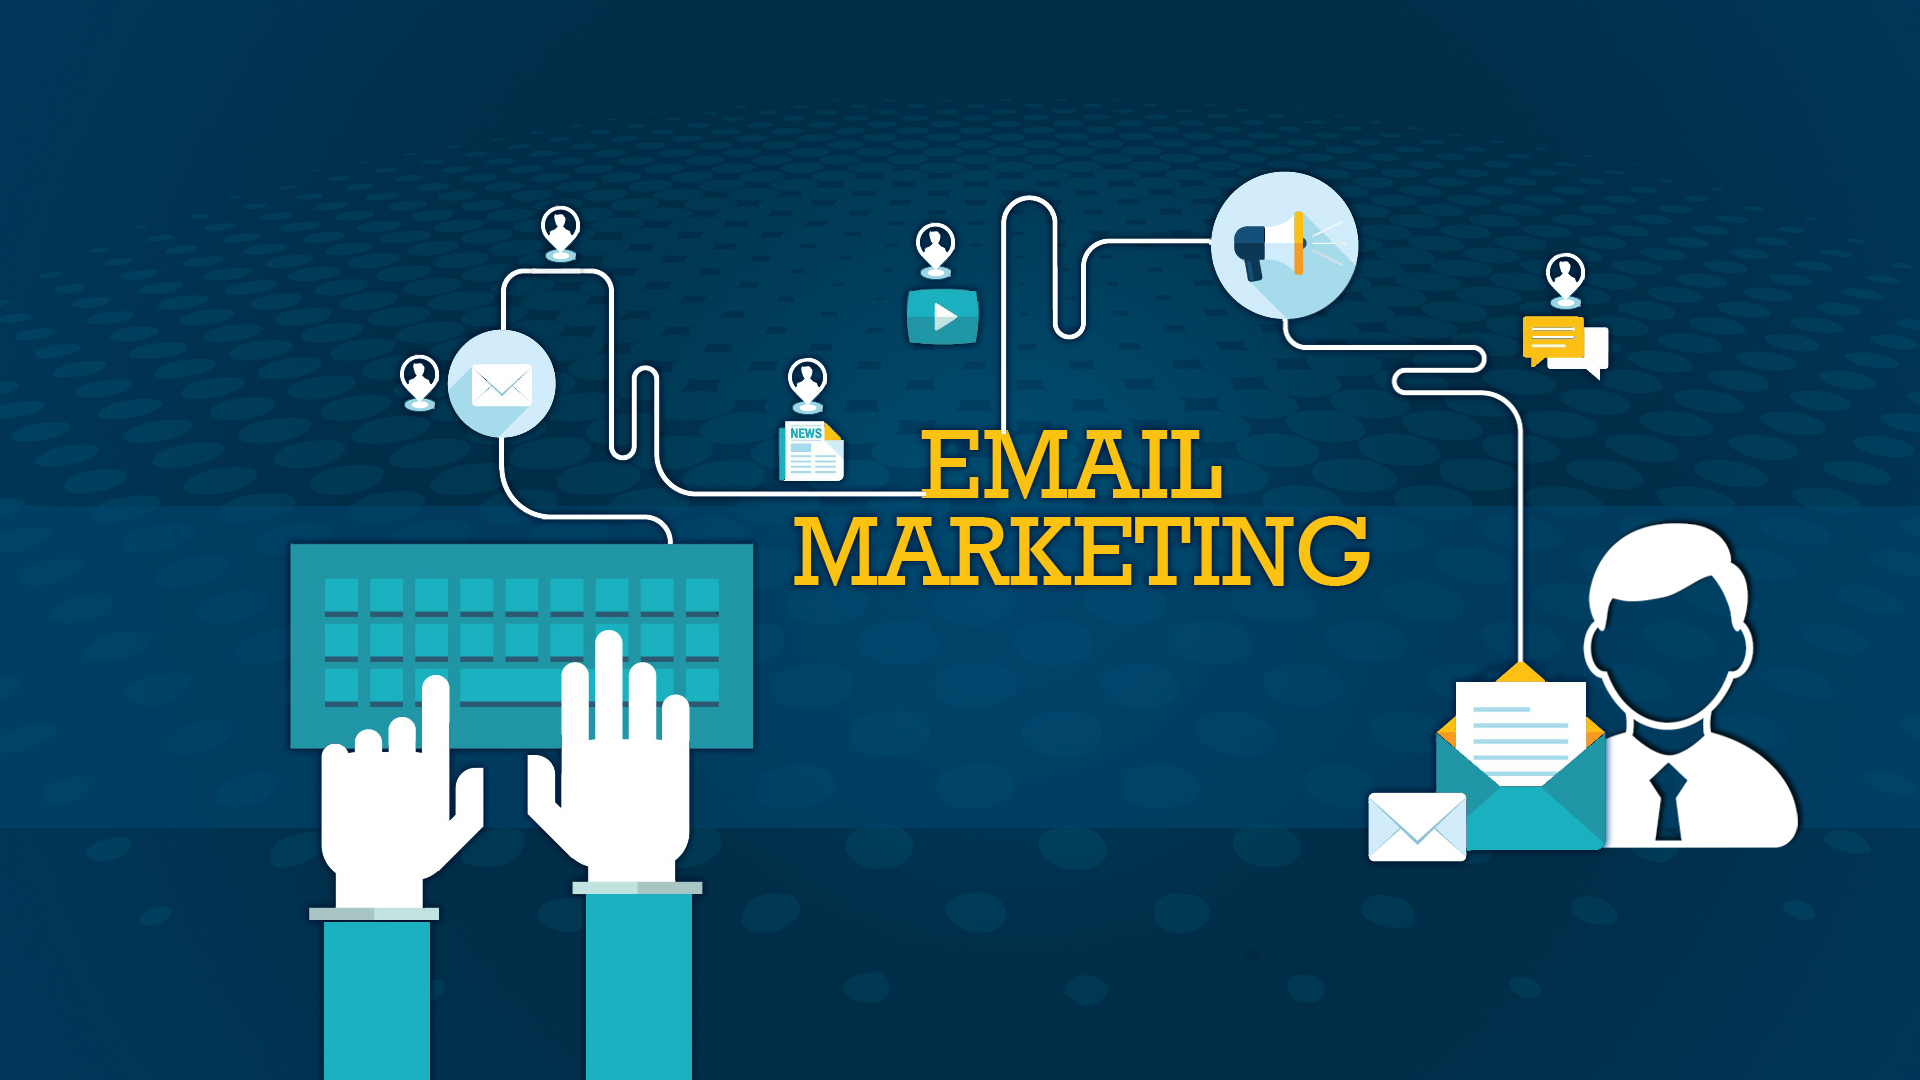 email marketing practices for lead generation